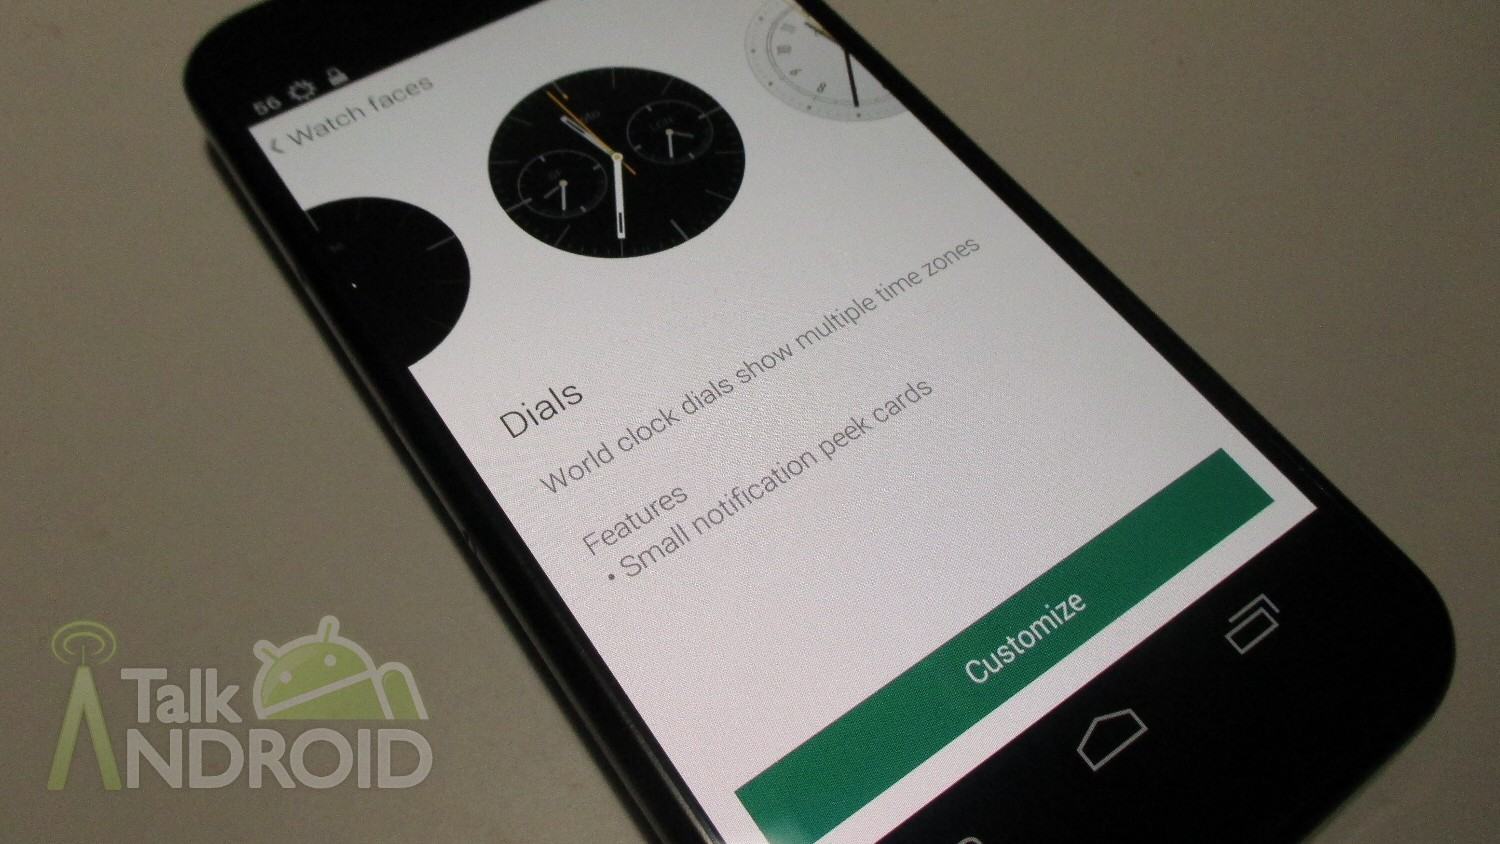 How To Use Motorola Connect To Customize The Pre Installed Motorola Watch Faces On The Moto 360 Talkandroid Com